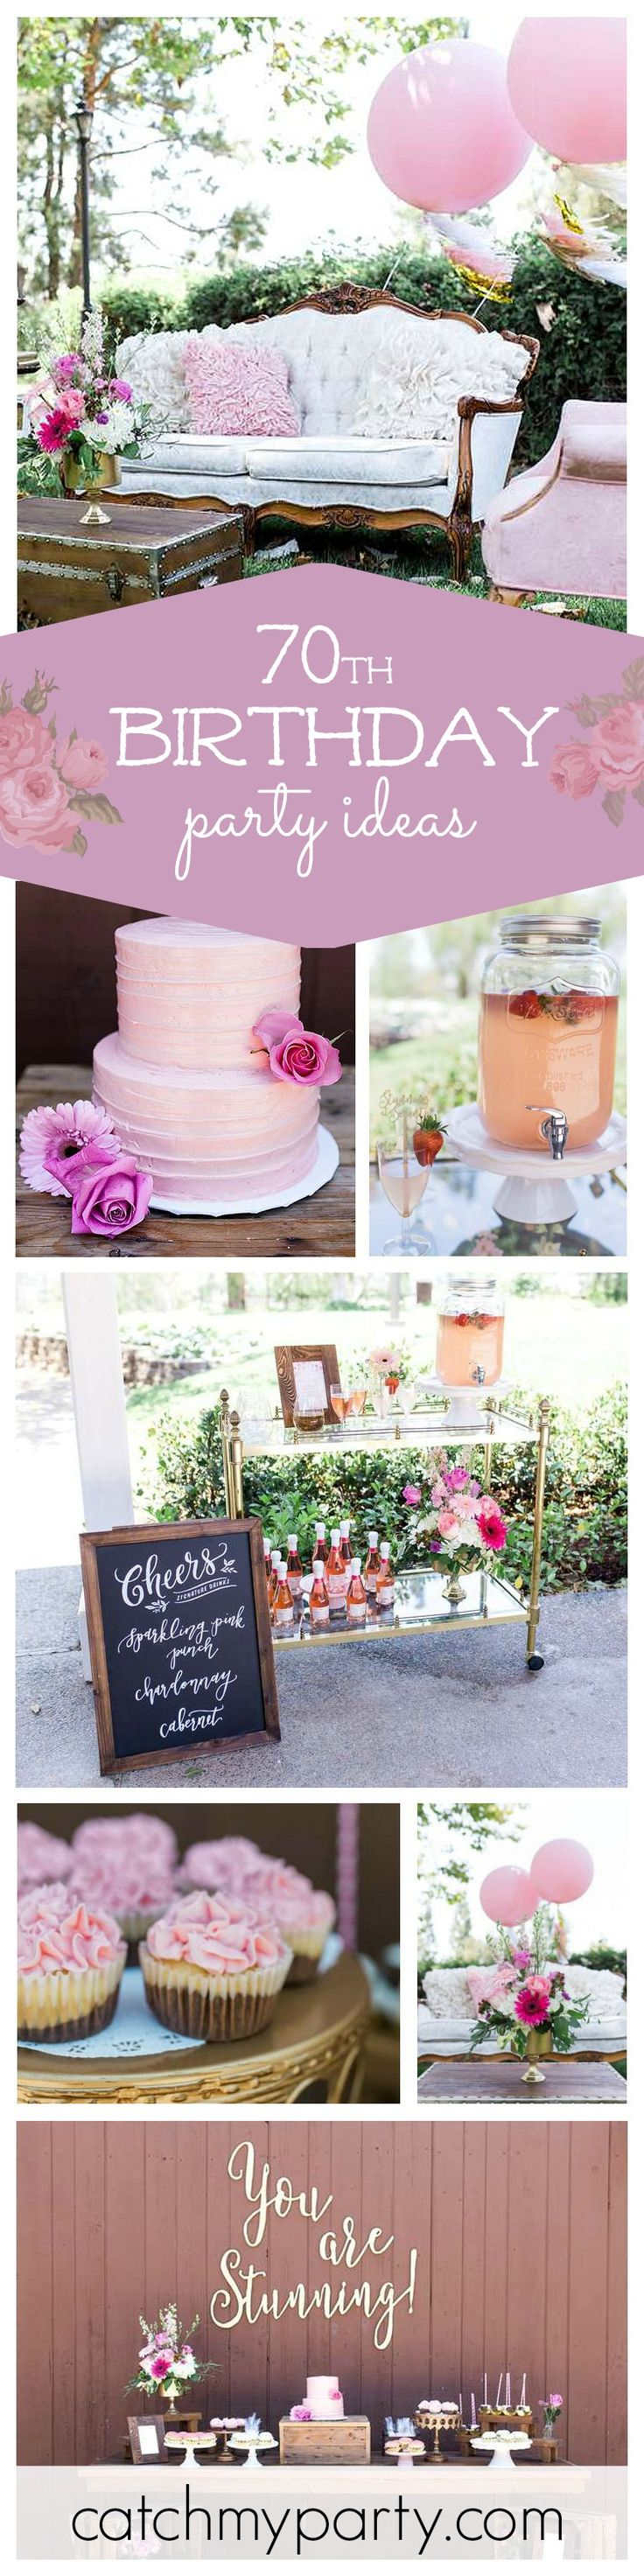 33 Best Images About Moms 70th Birthday Party Ideas On